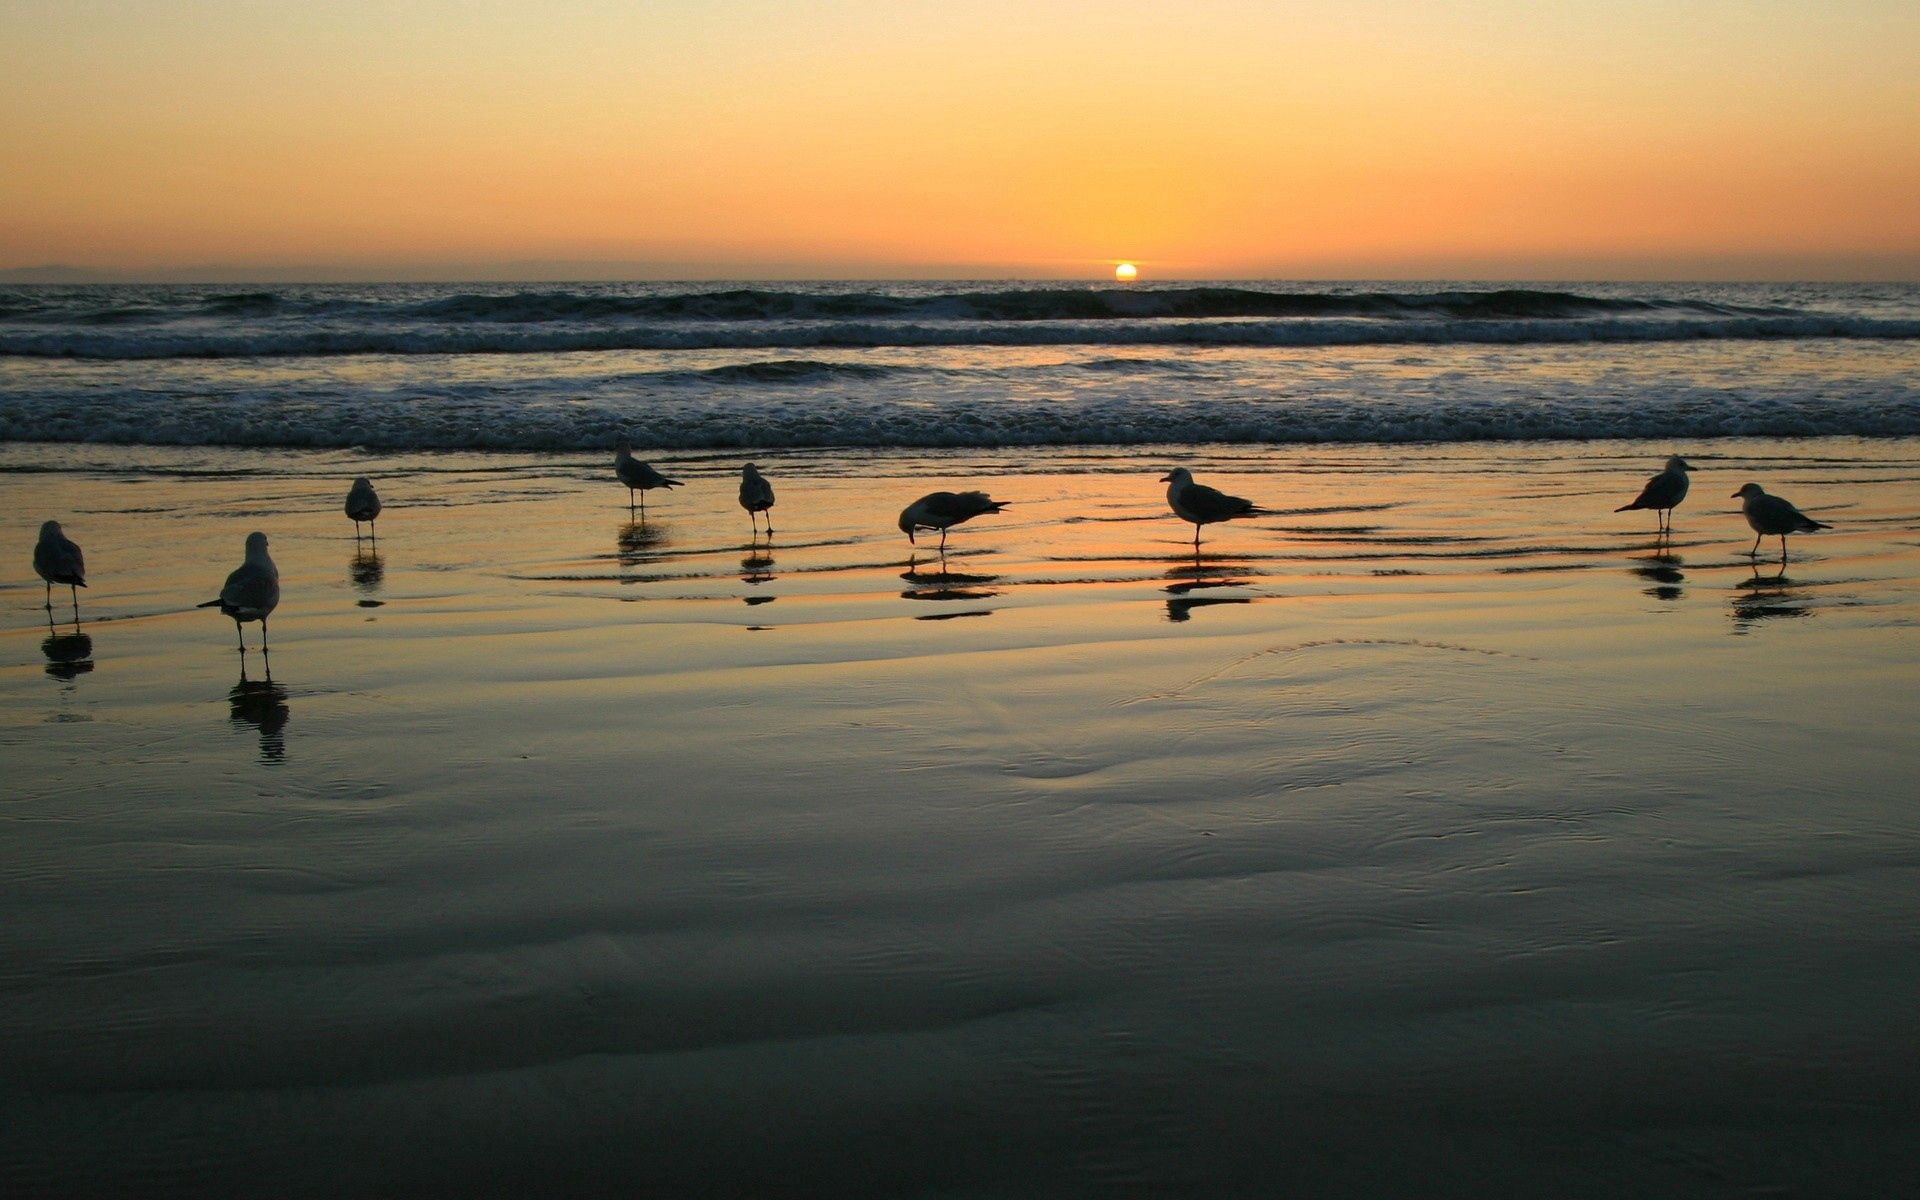 148196 download wallpaper Animals, Sea, Sunset, Shine, Light, Seagulls screensavers and pictures for free